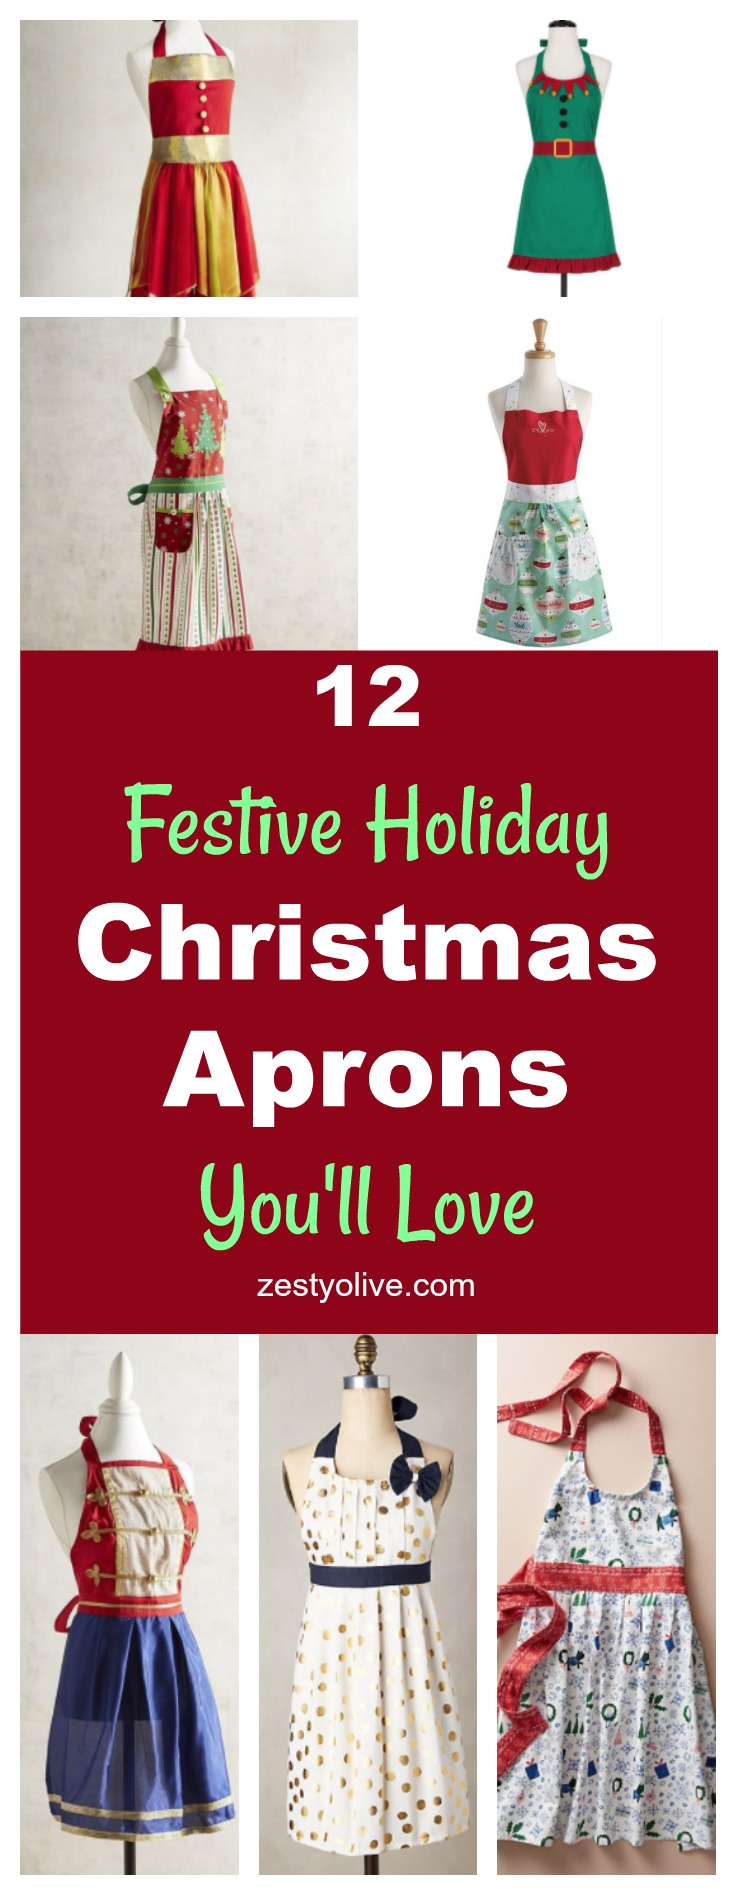 12 Festive Holiday Christmas Aprons You'll Love